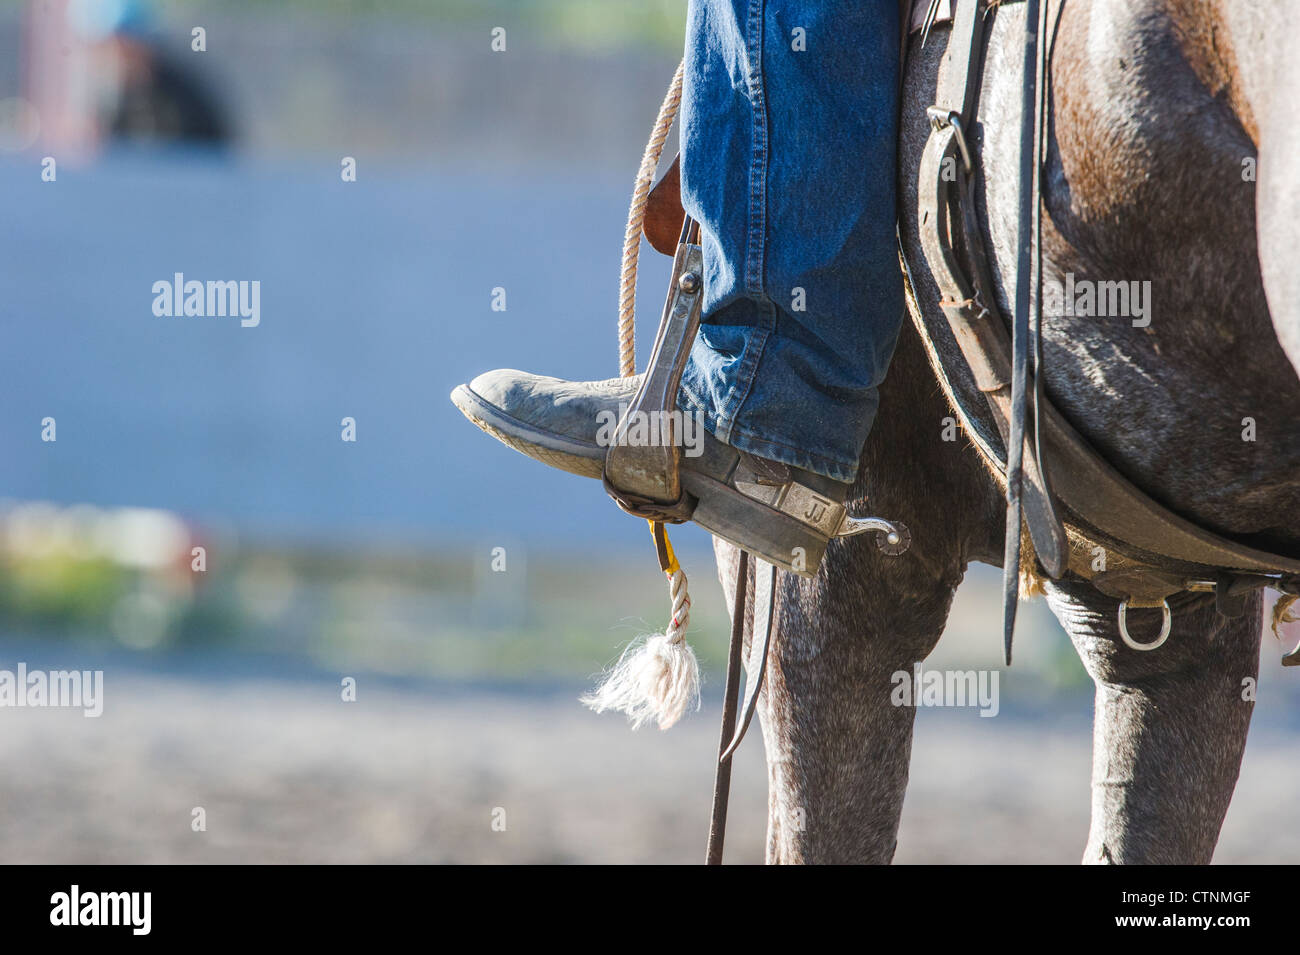 Cowboy on horse at the  Tsuu T'ina Annual Rodeo & Pow Wow - Stock Image